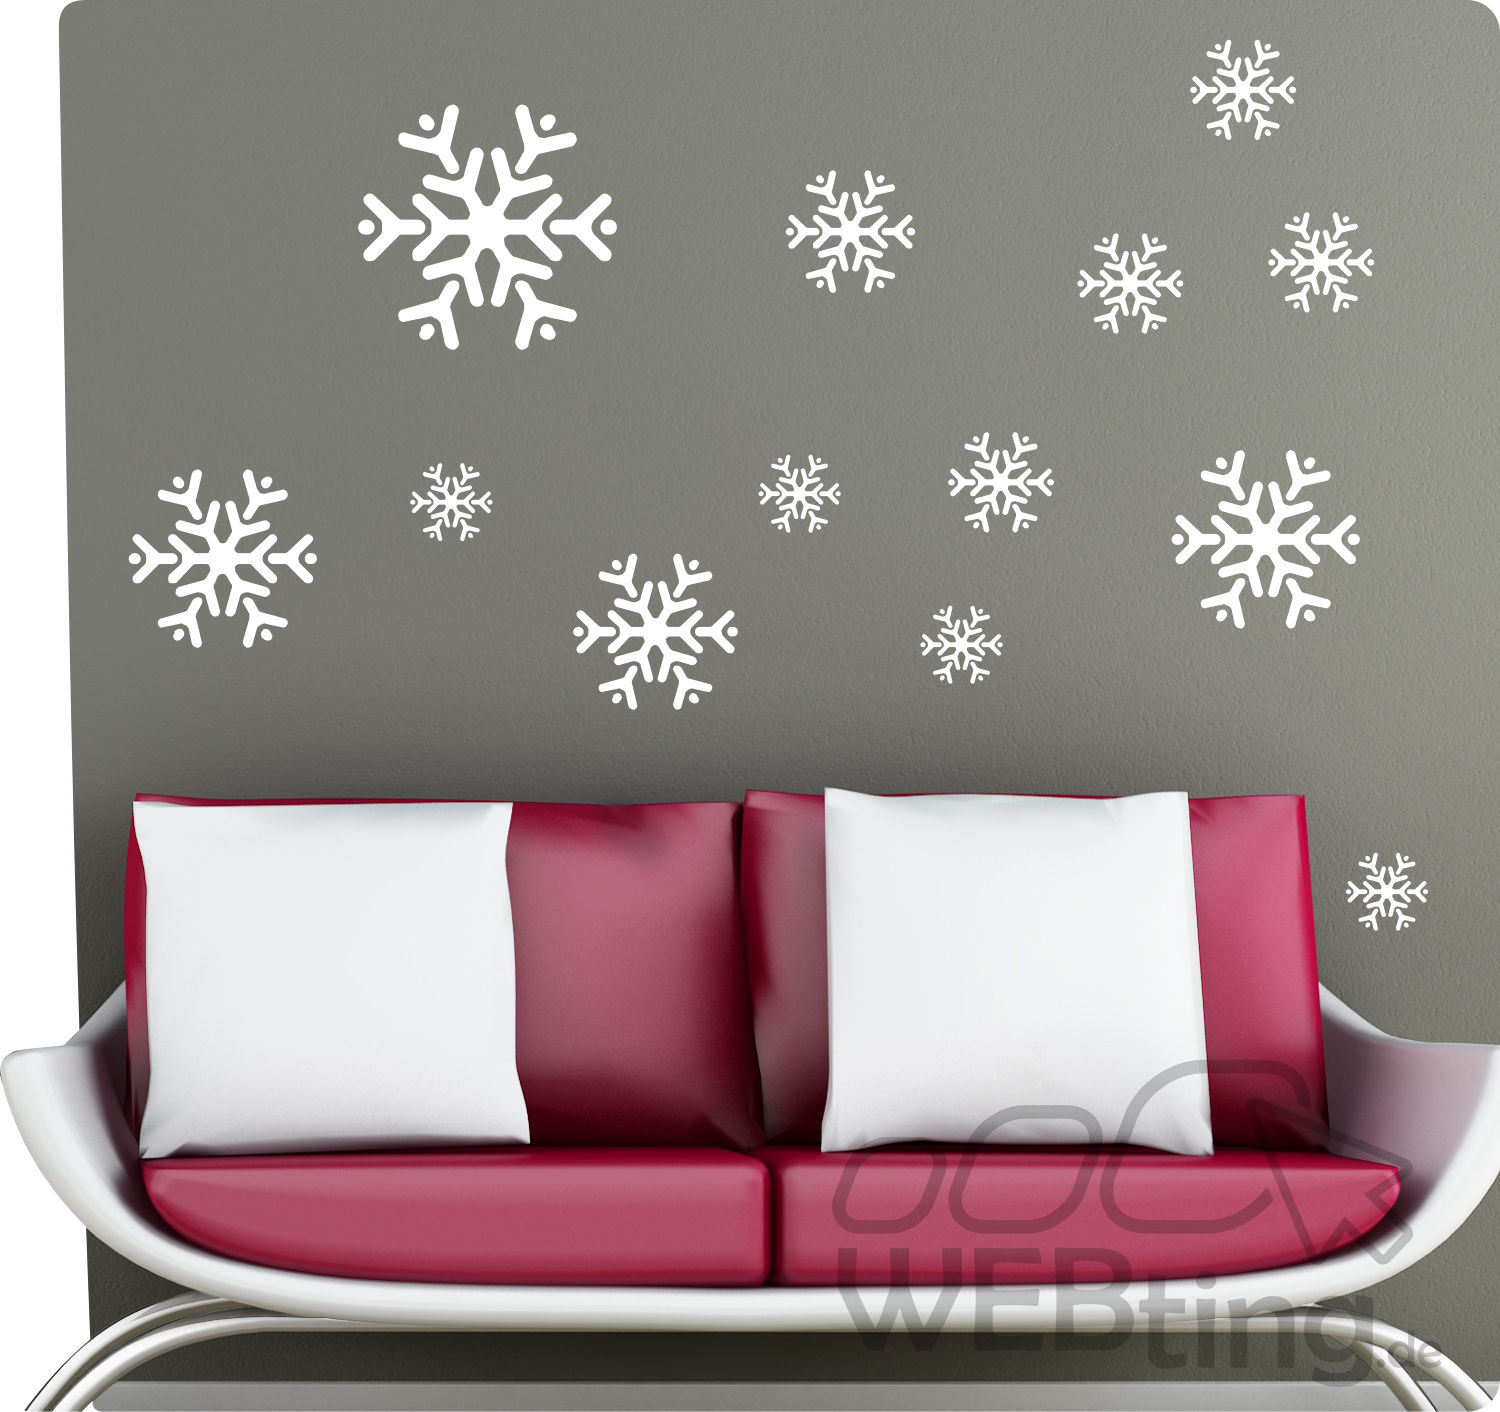 schneeflocke winter fensterdeko fenster weihnachten wandaufkleber aufkleber deko. Black Bedroom Furniture Sets. Home Design Ideas